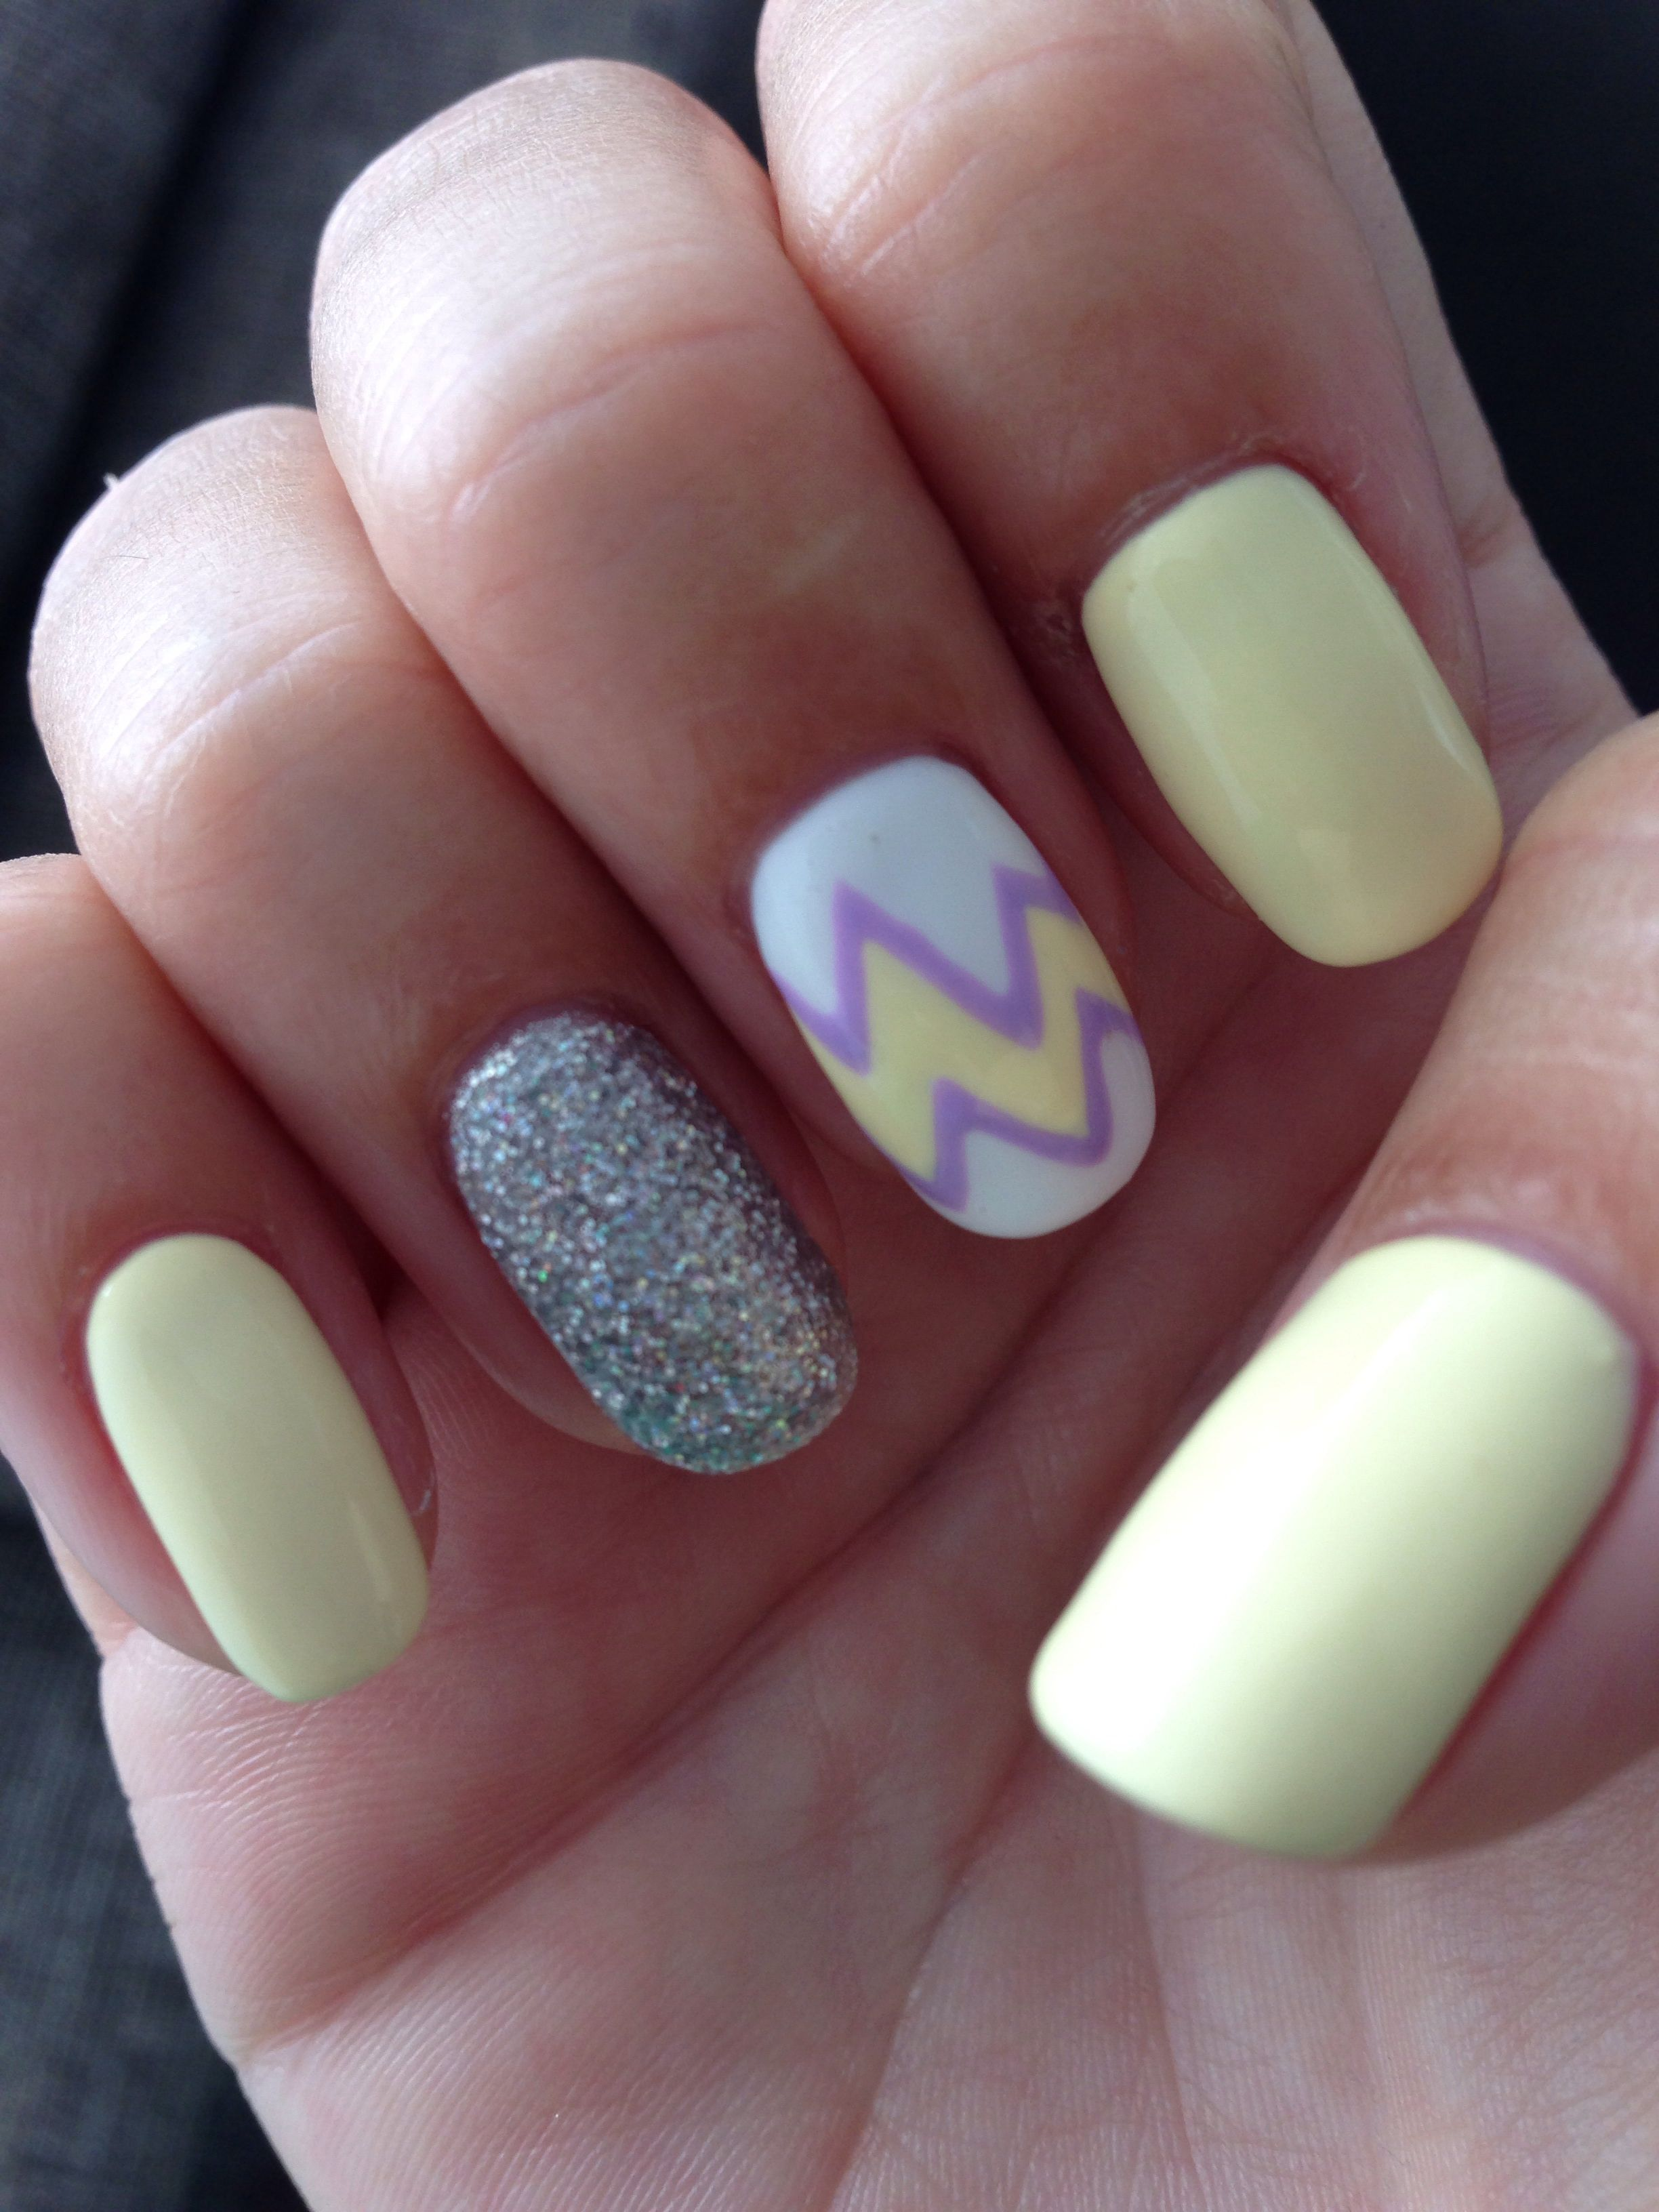 Gel polish on natural nails by cherry nava in auckland nz